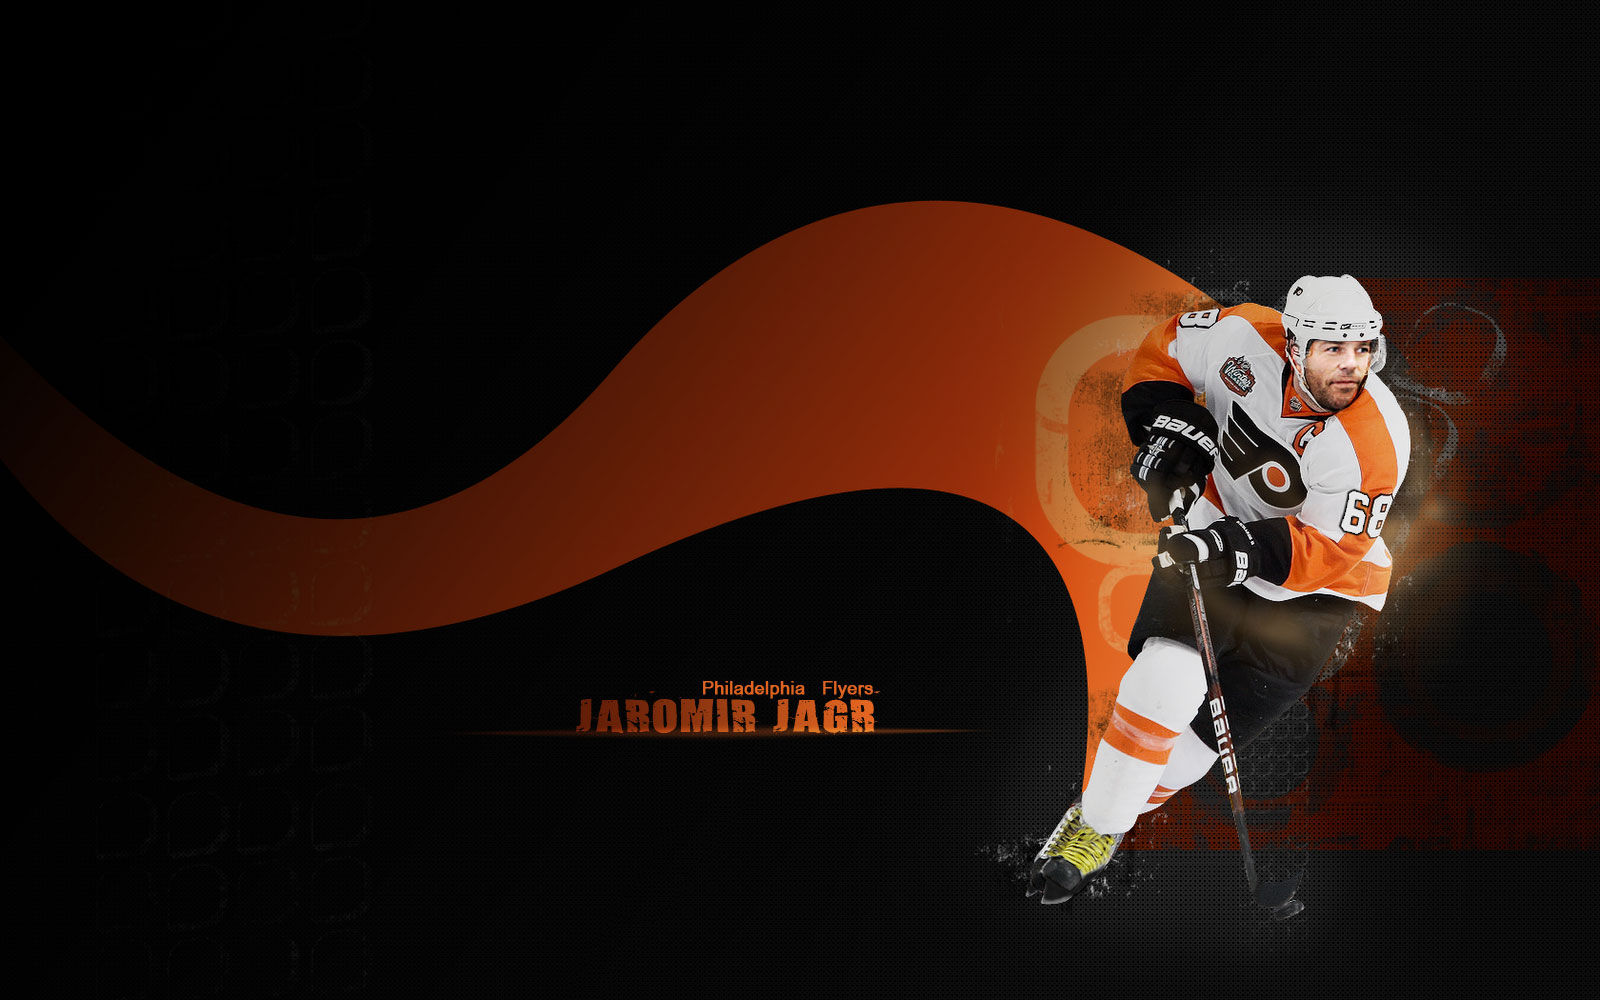 NHL Wallpapers   Jaromir Jagr Philadelphia Flyers 1600x1000 wallpaper 1600x1000